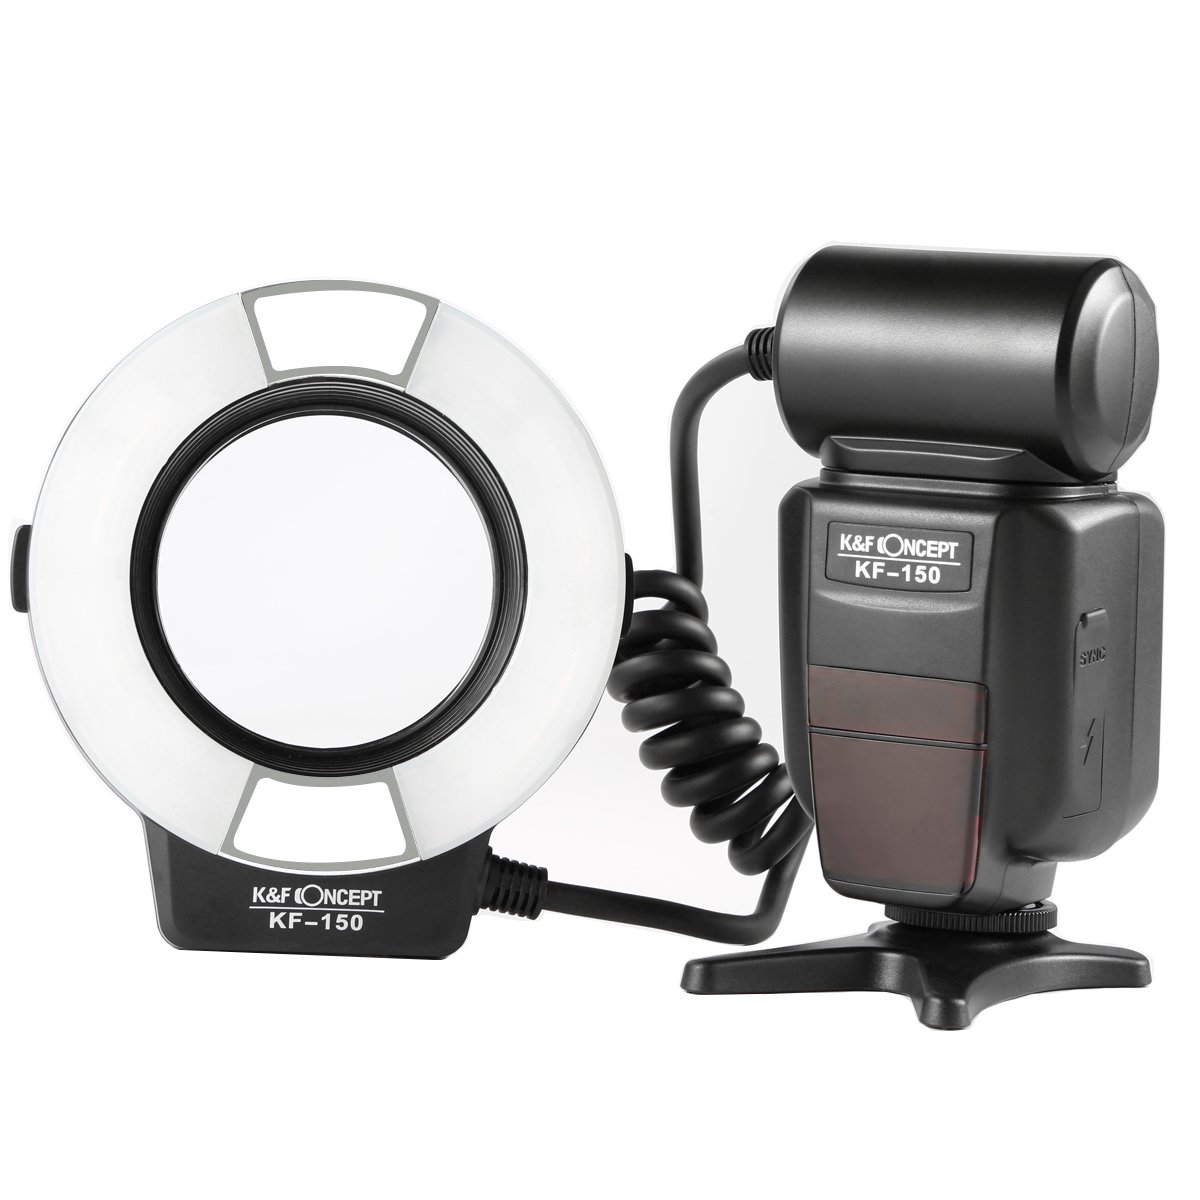 Macro Ring Light Flash, K&F Concept KF-150 E-TTL Speedlite LCD Display and Wireless Slave Function with 6pcs Adapter Rings for Canon DSLR Cameras by K&F Concept